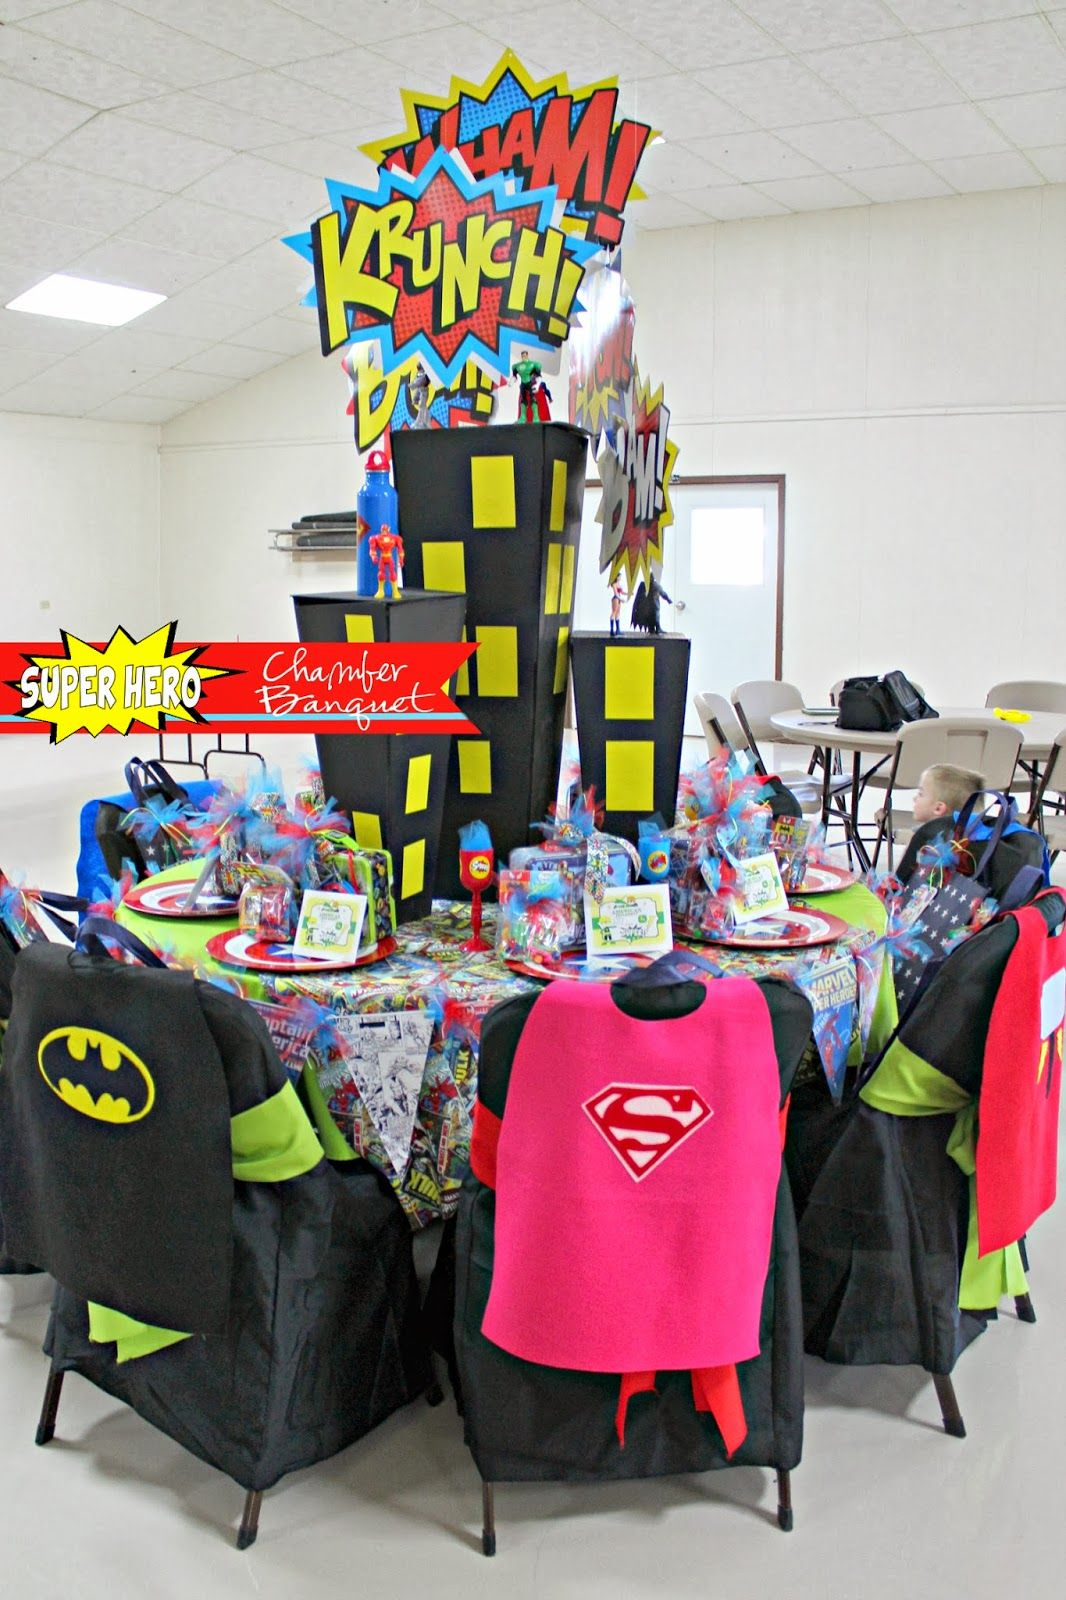 Super Hero Themed Table Decorations For A Chamber Banquet